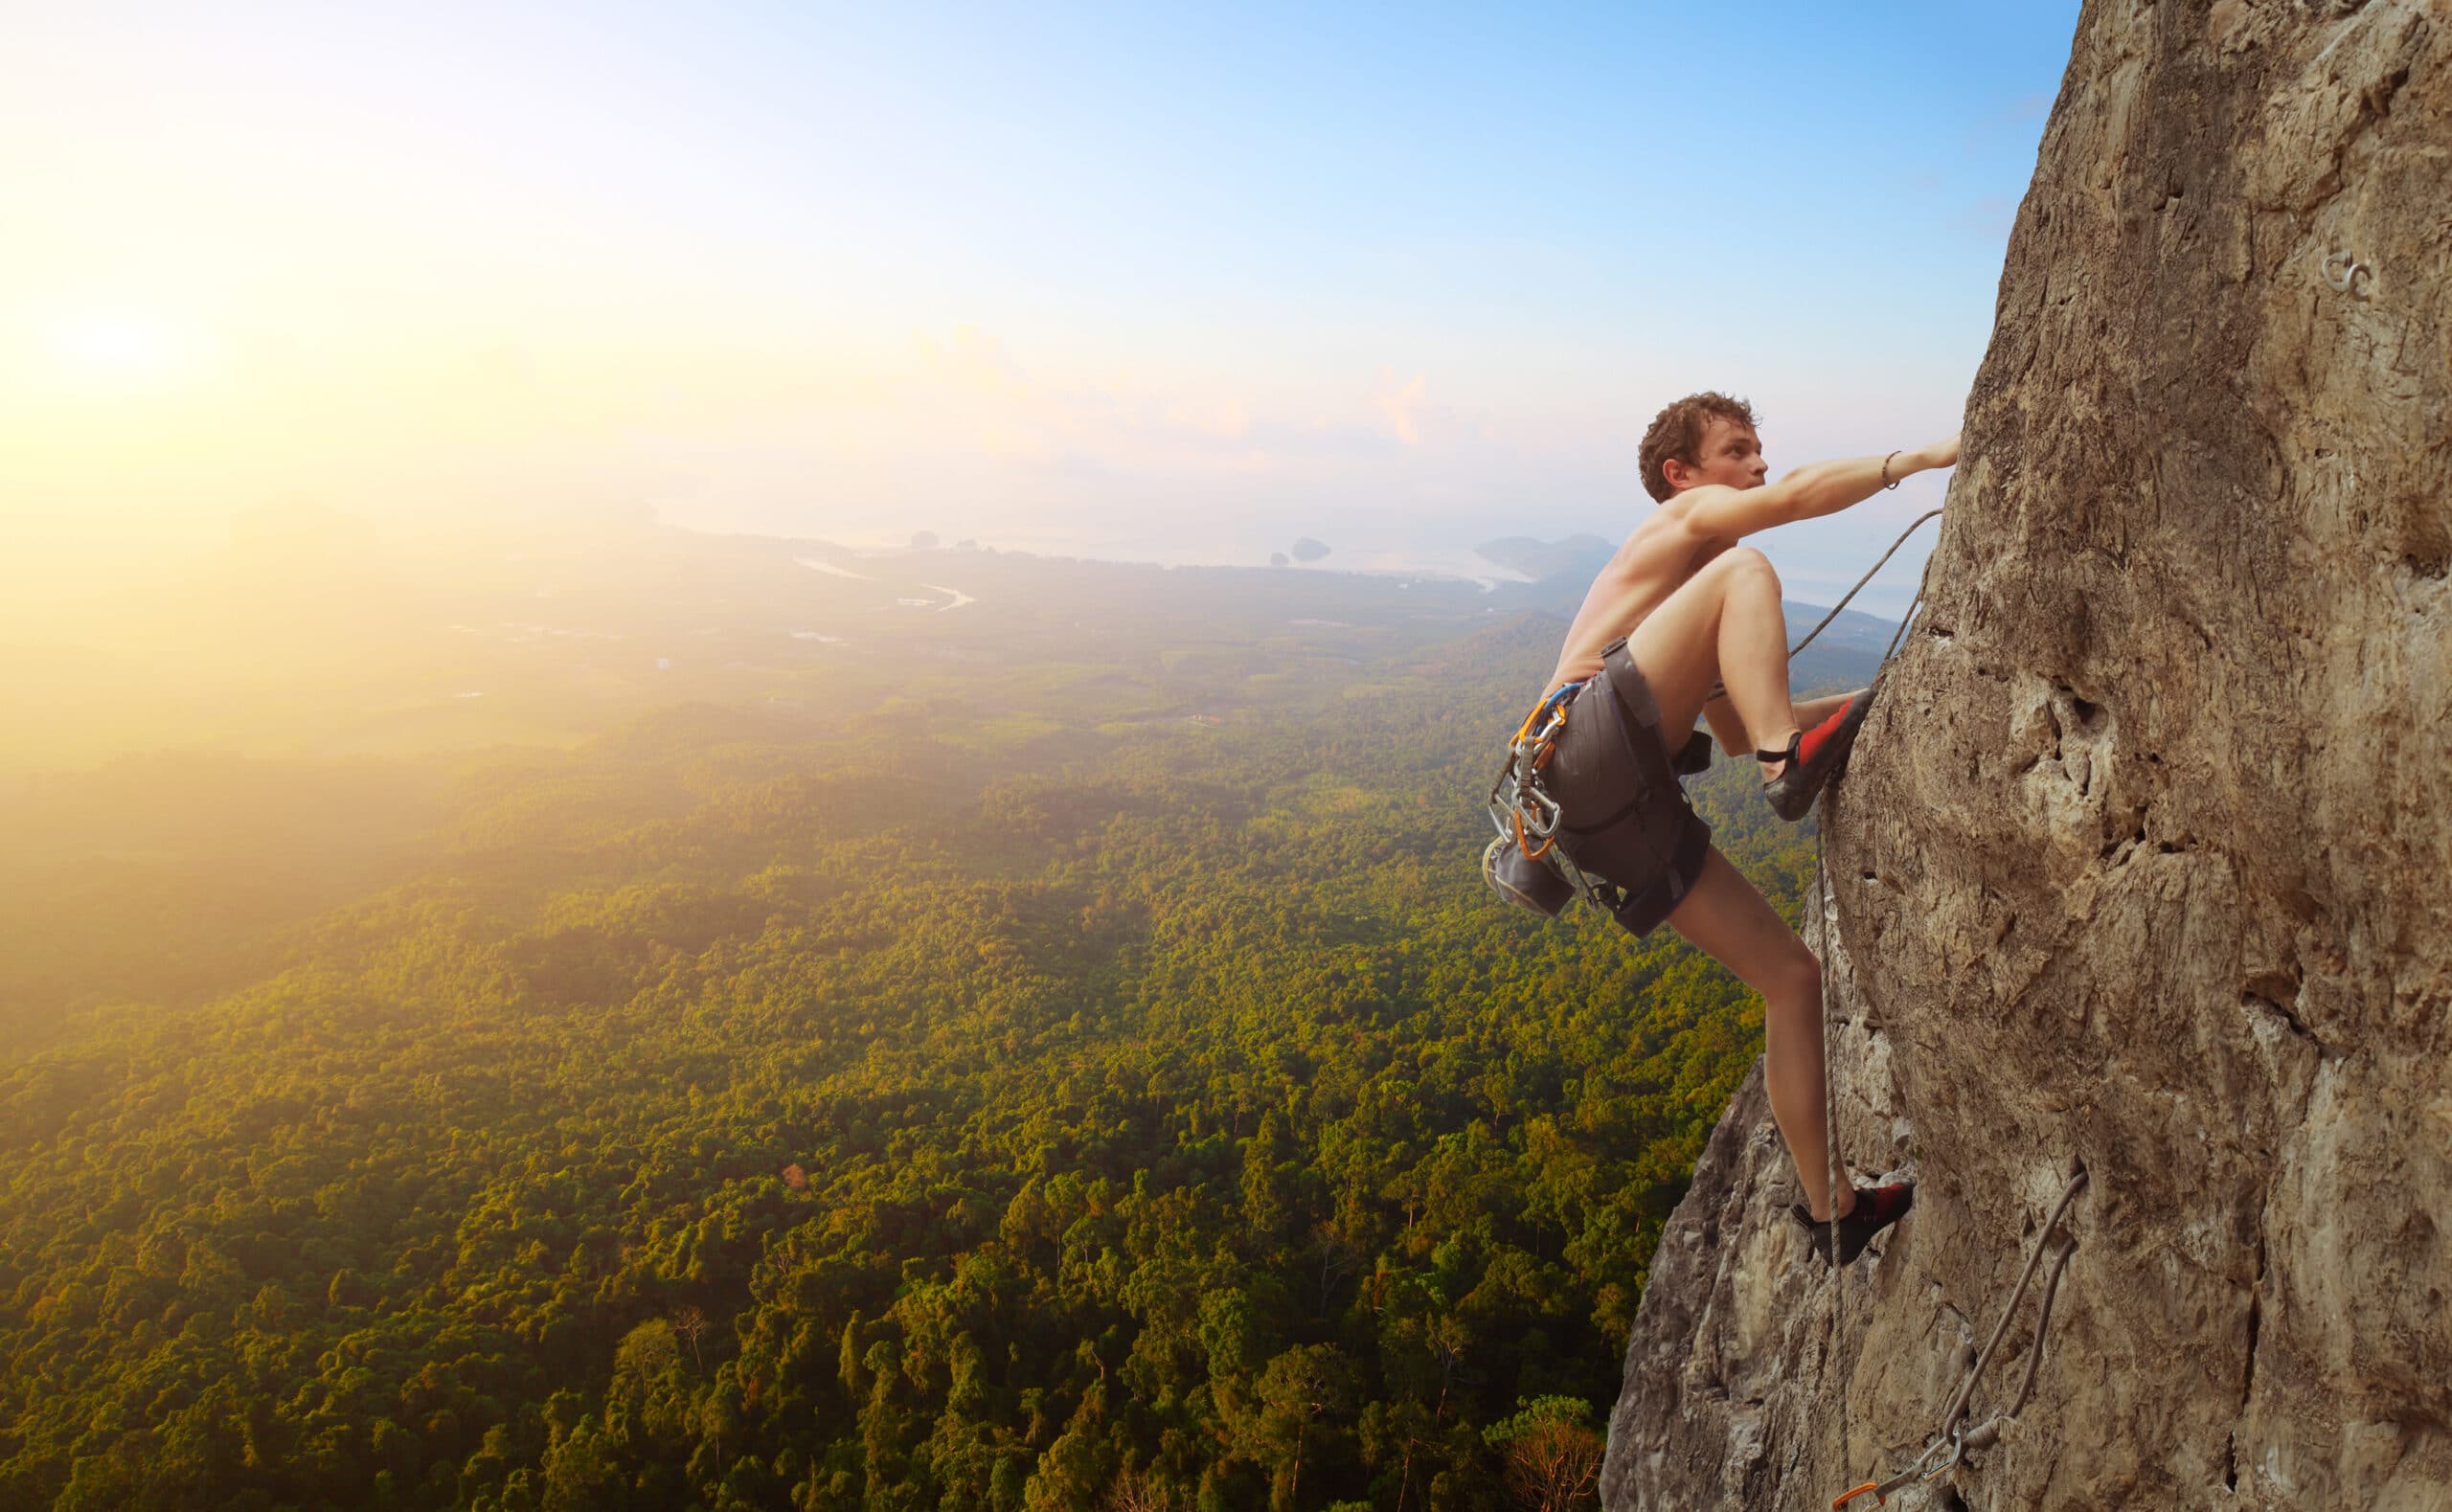 Young man climbs on a rocky wall in a valley with mountains at sunrise